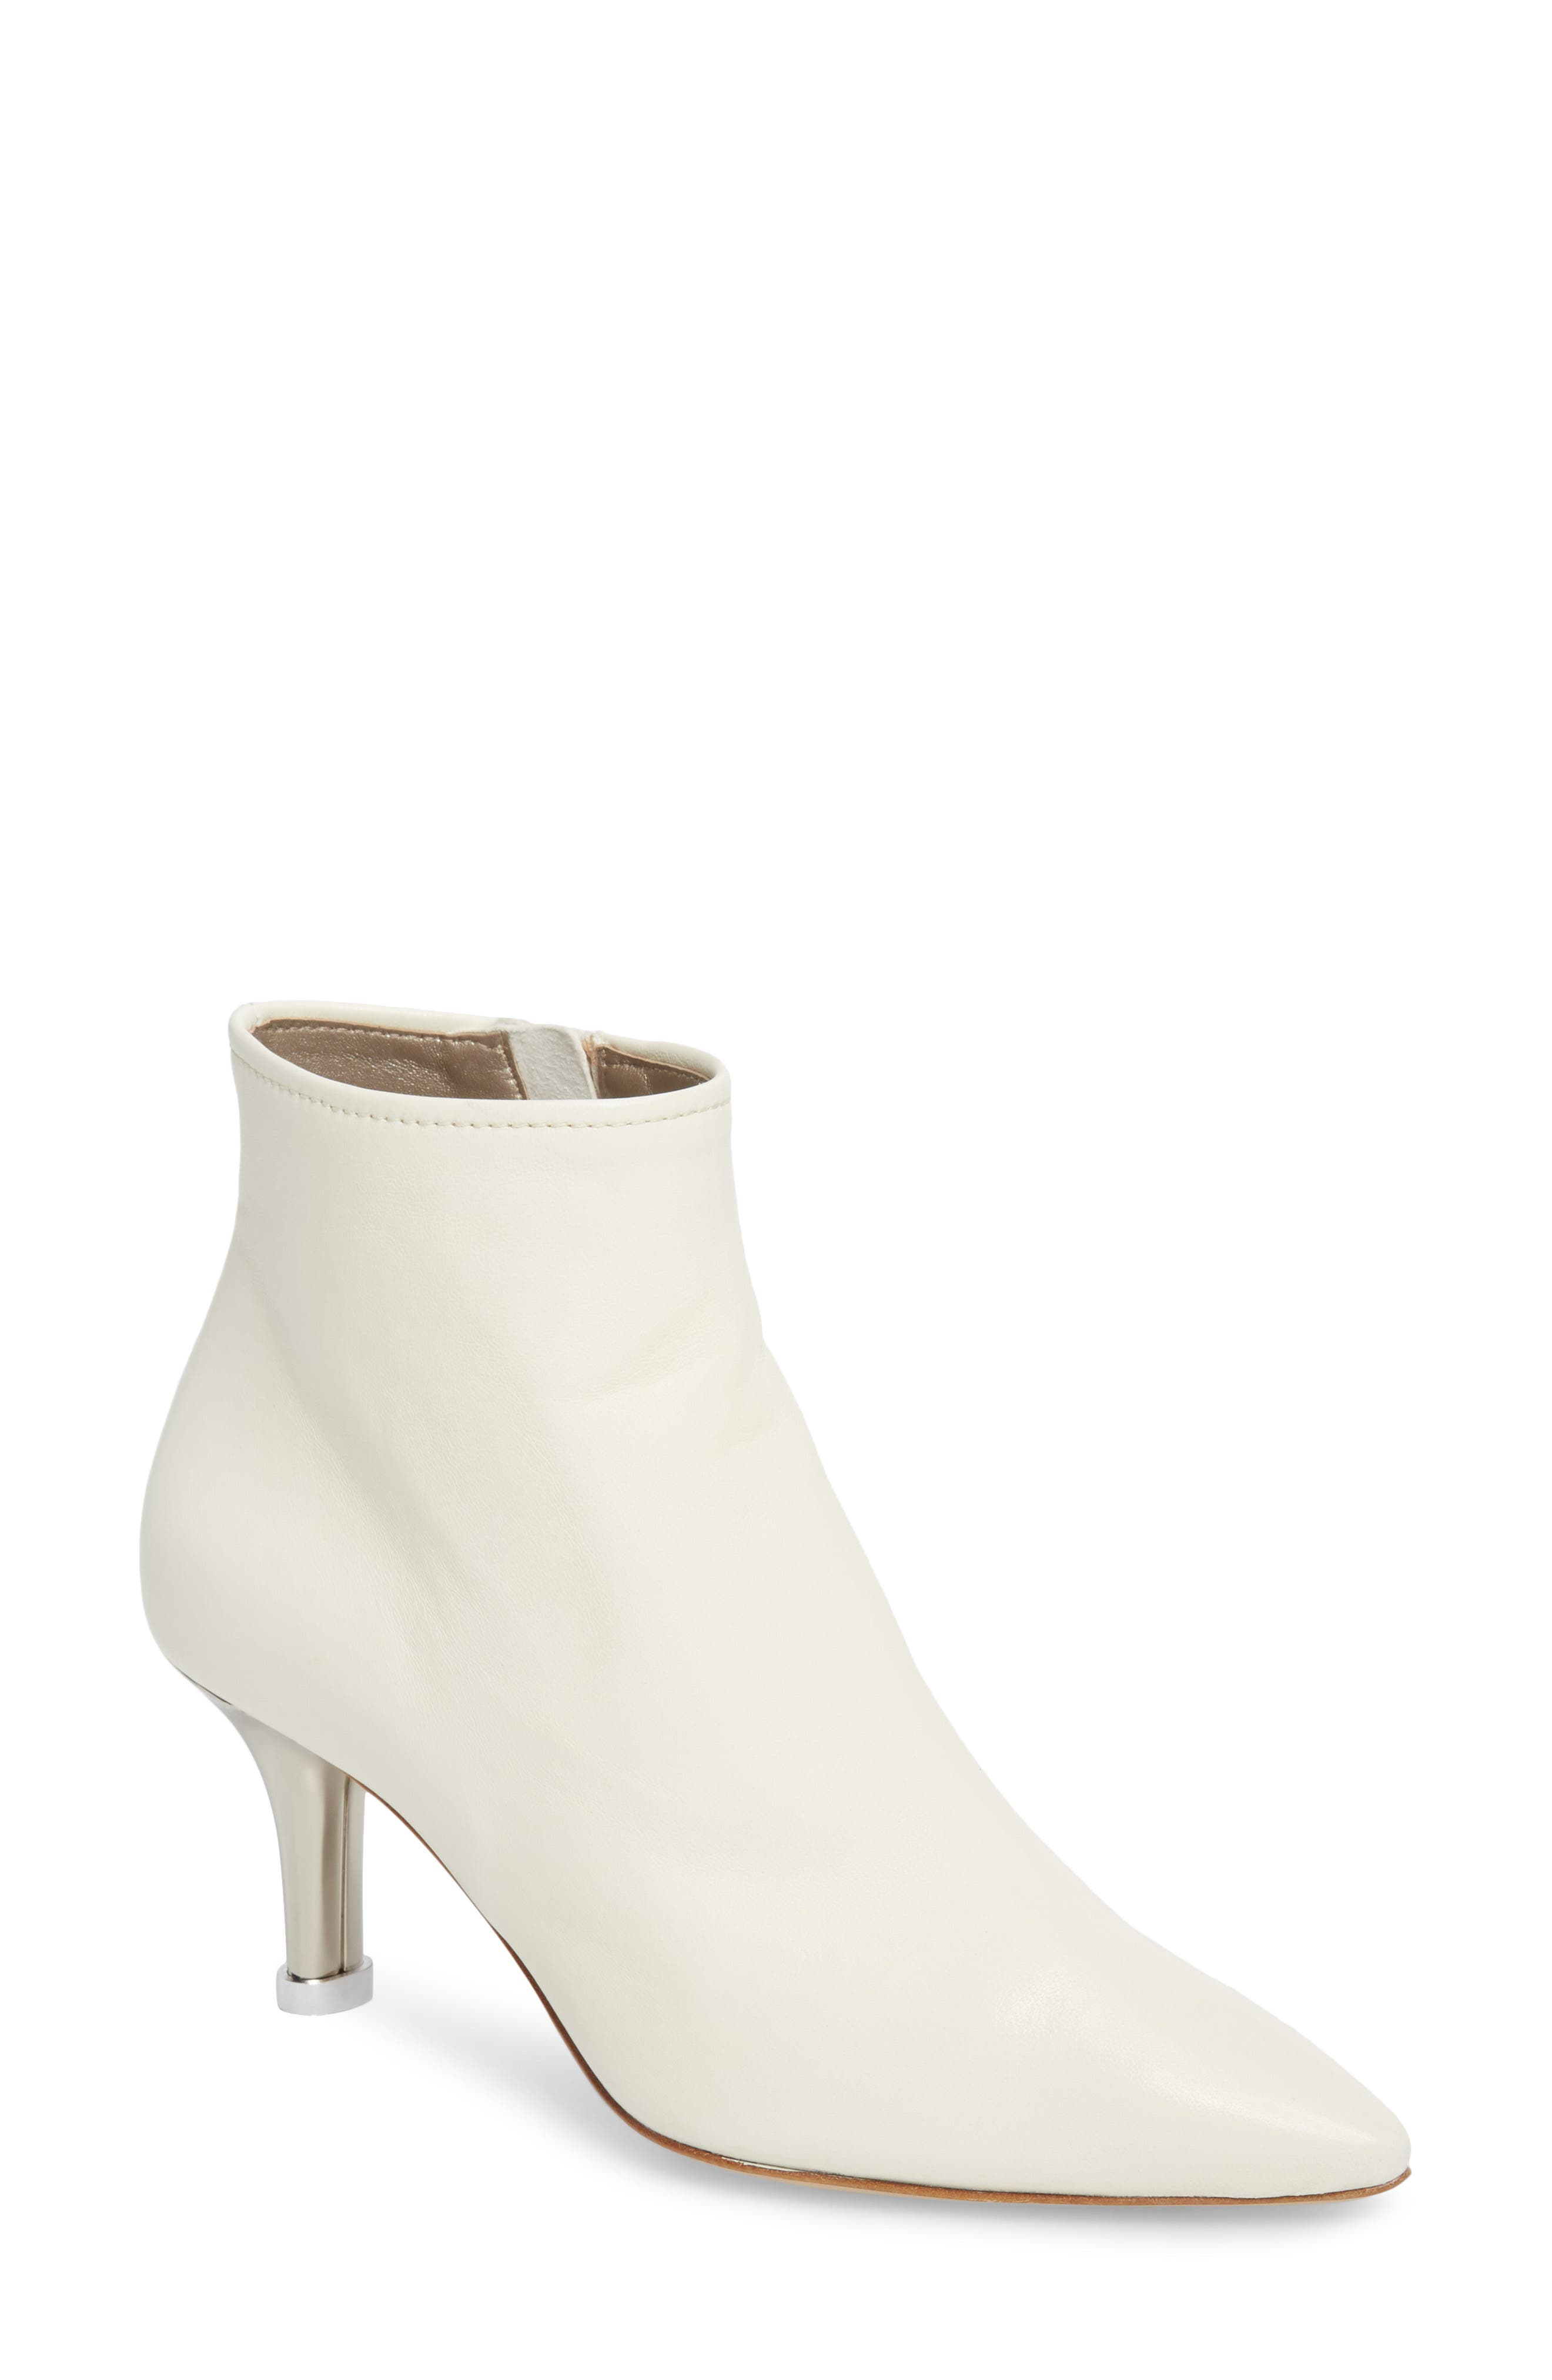 AGL ATTILIO GIUSTI LEOMBRUNI Summer Bootie, Off White Leather